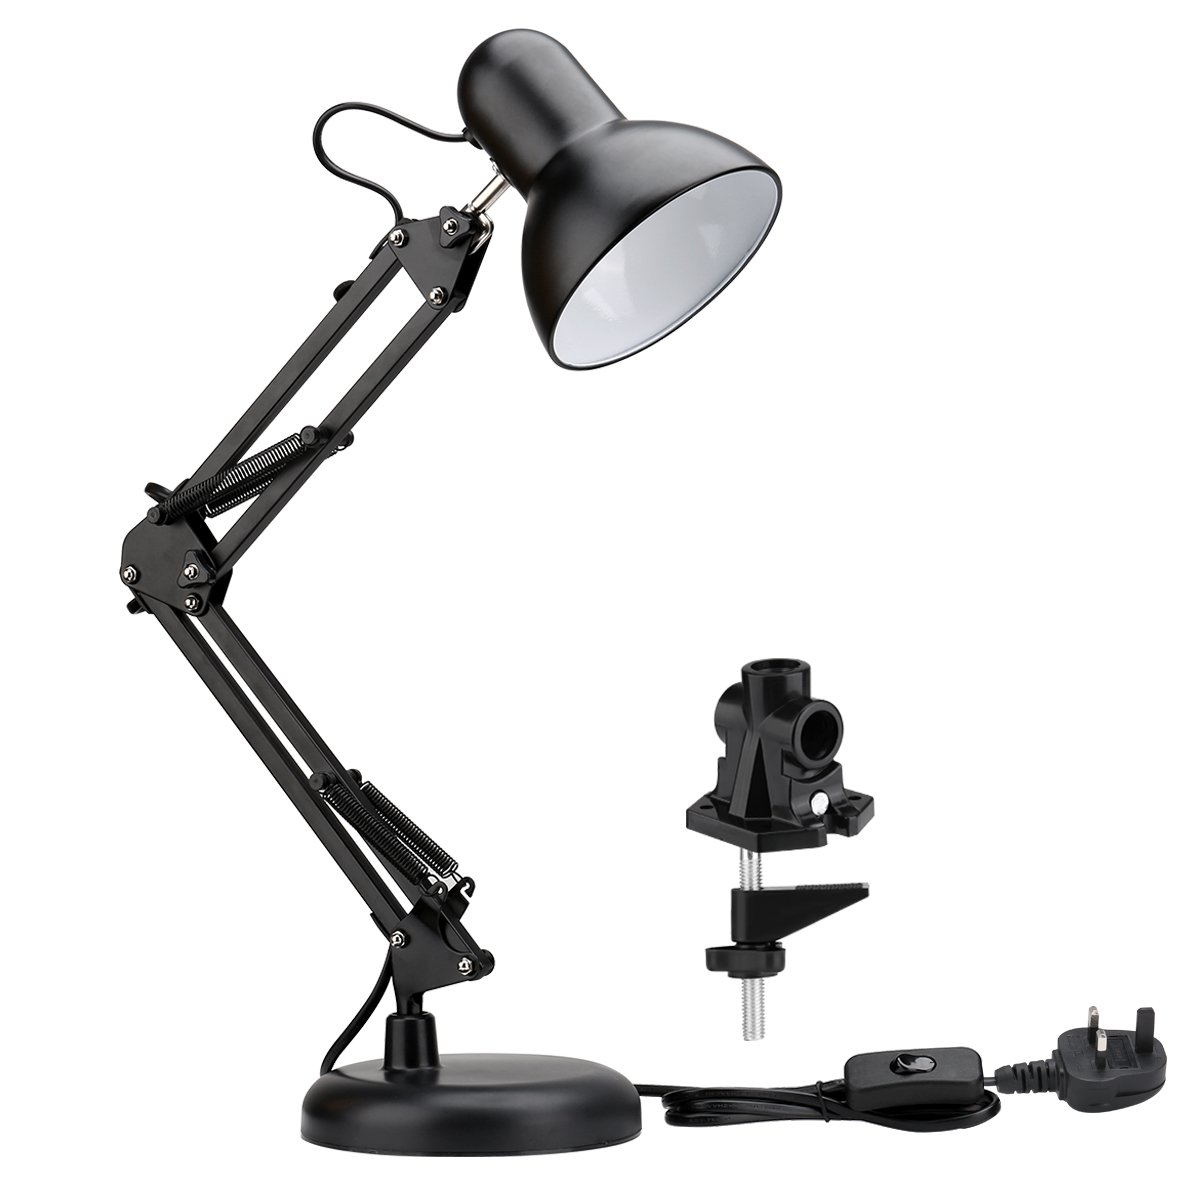 LE Swing Arm LED Desk Lamp E27 Bulb Socket Flexible C-Clamp Table Lamp Classic Architect Bedside Light for Reading Working Studying and More Lighting EVER